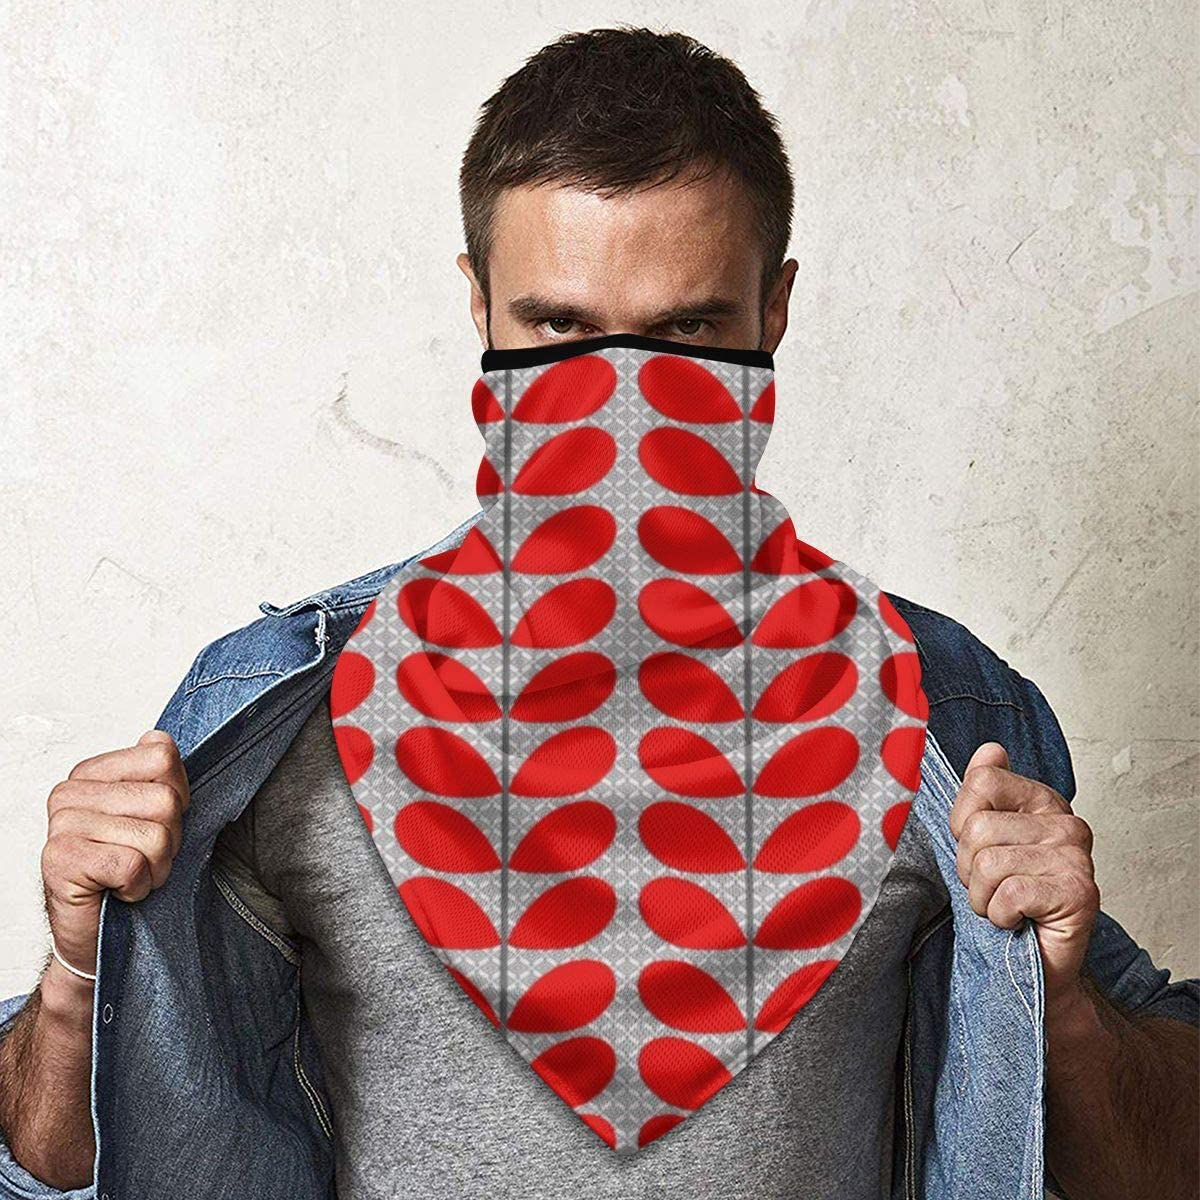 Wind-Resistant Face Mask/& Neck Gaiter,Balaclava Ski Masks,Breathable Tactical Hood,Windproof Face Warmer for Running,Motorcycling,Hiking-Mid Century Danish Leaves Deep Red /& Gray Grey